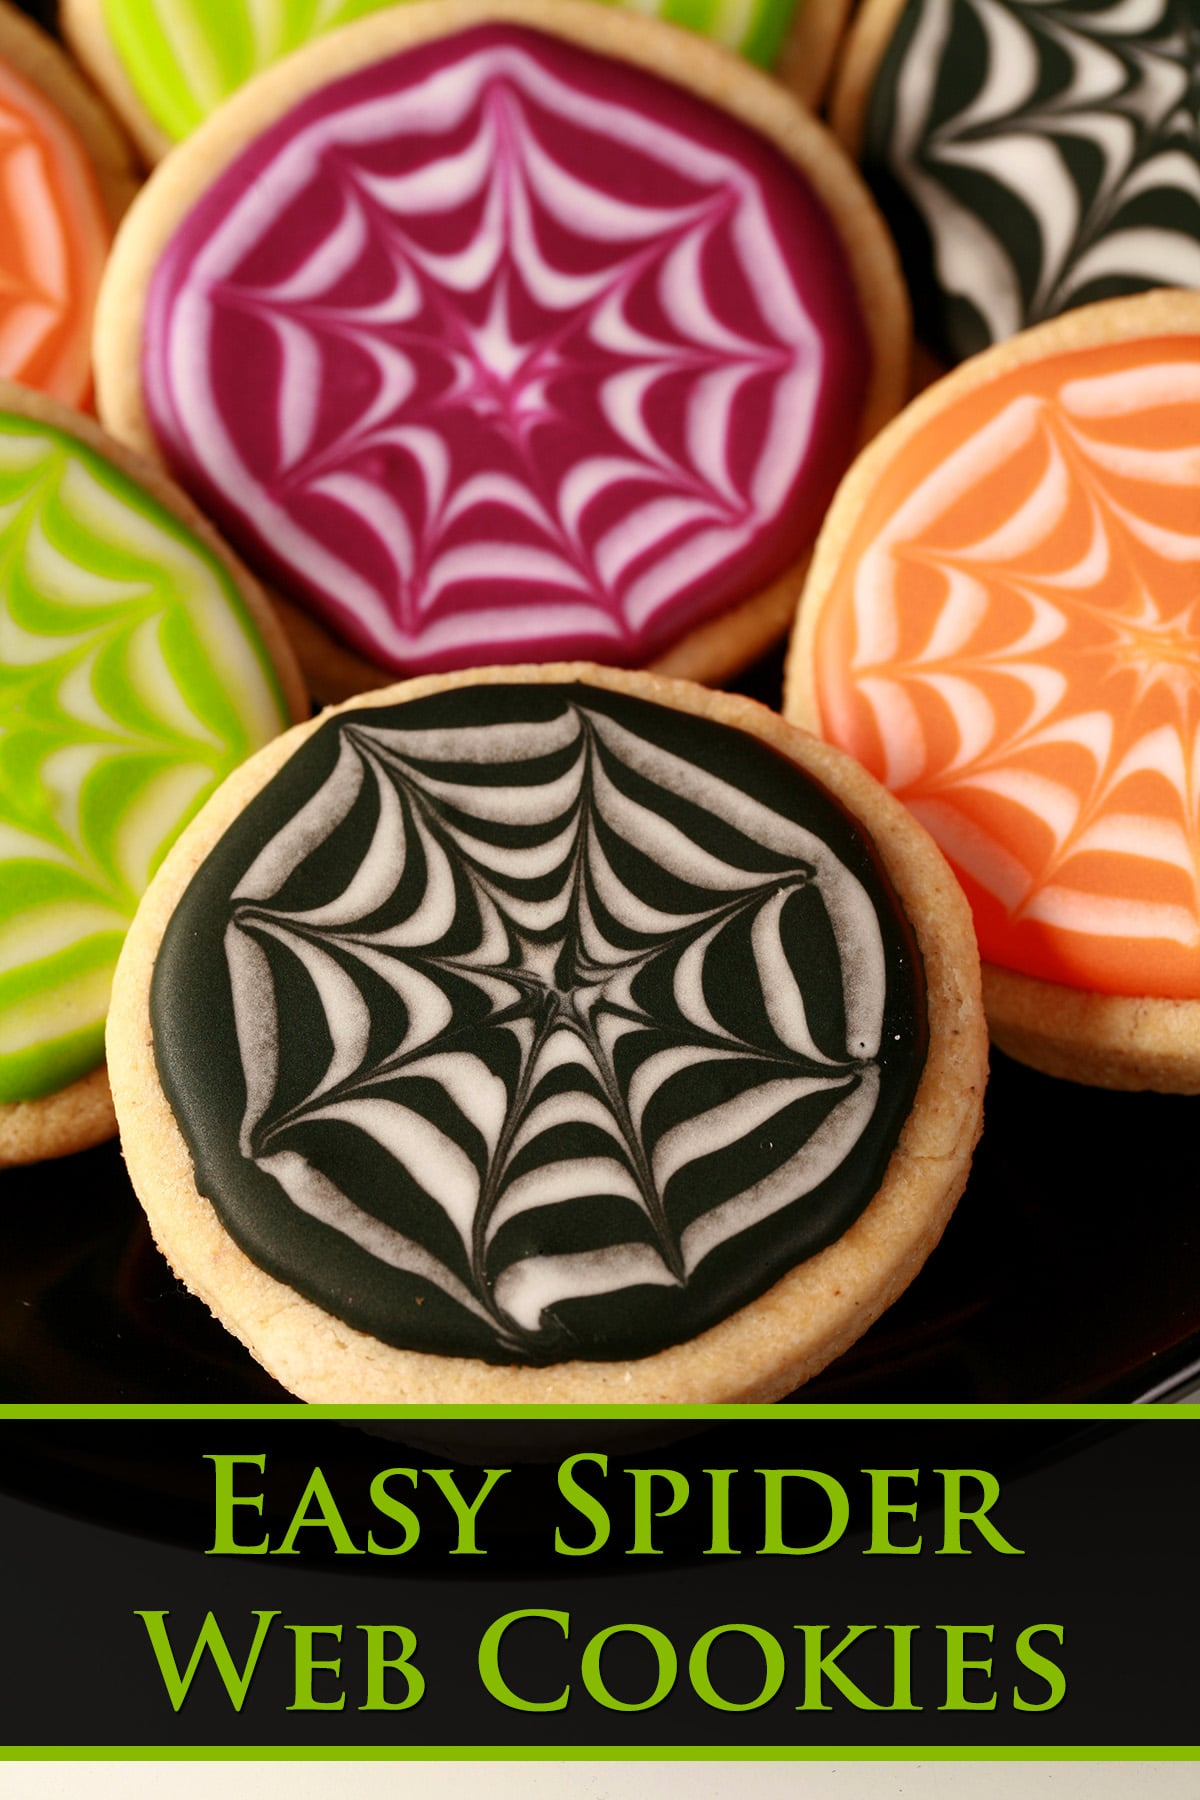 Close up view of a plate of round halloween cookies, frosted with orange, lime green, purple, and black individually. Each has a white stylized spider web design in the coloured background.